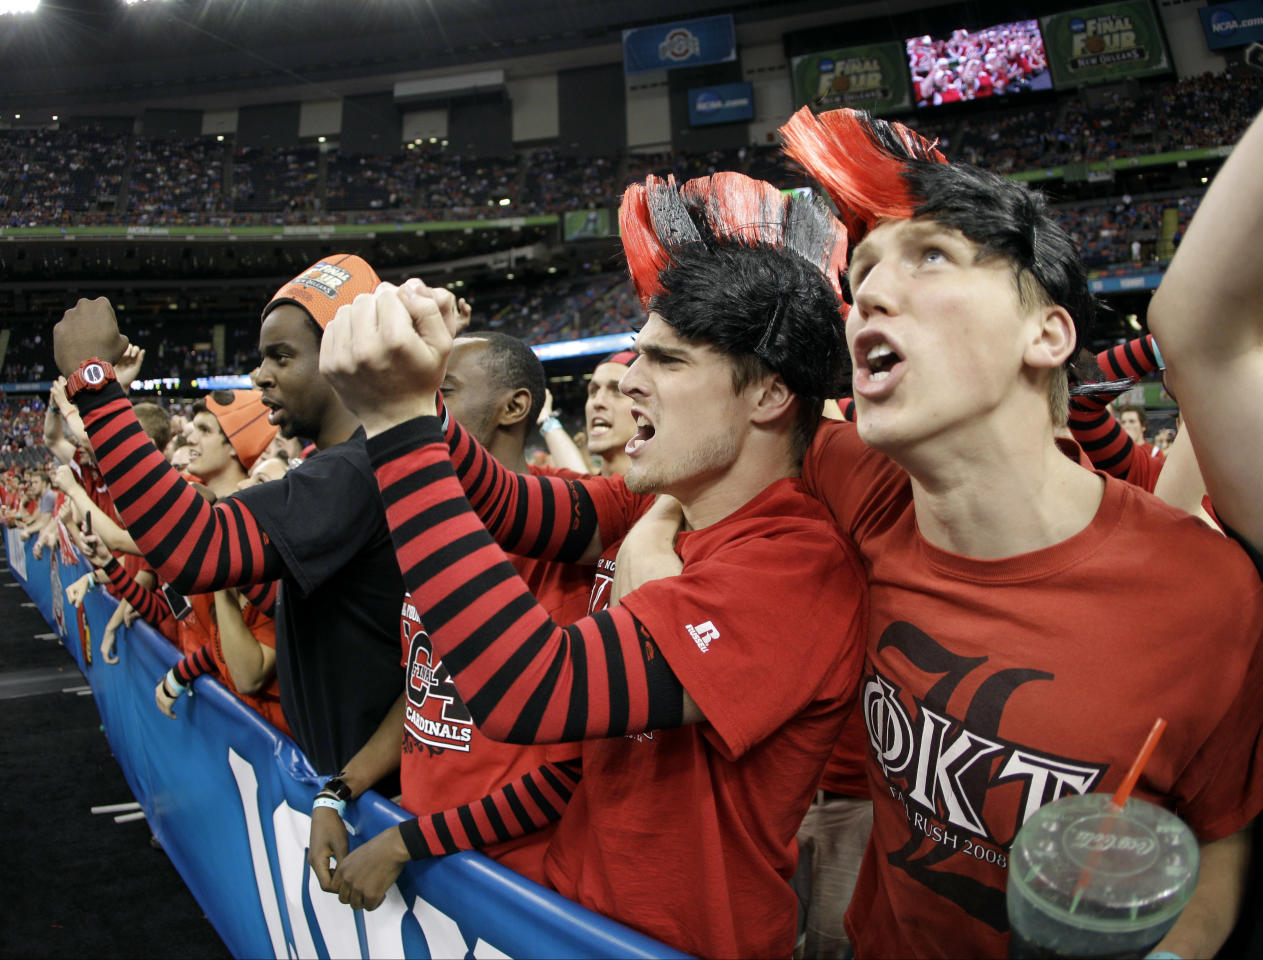 Louisville fans cheer before an NCAA Final Four semifinal college basketball tournament game between Kentucky and Louisville Saturday, March 31, 2012, in New Orleans. (AP Photo/Mark Humphrey)